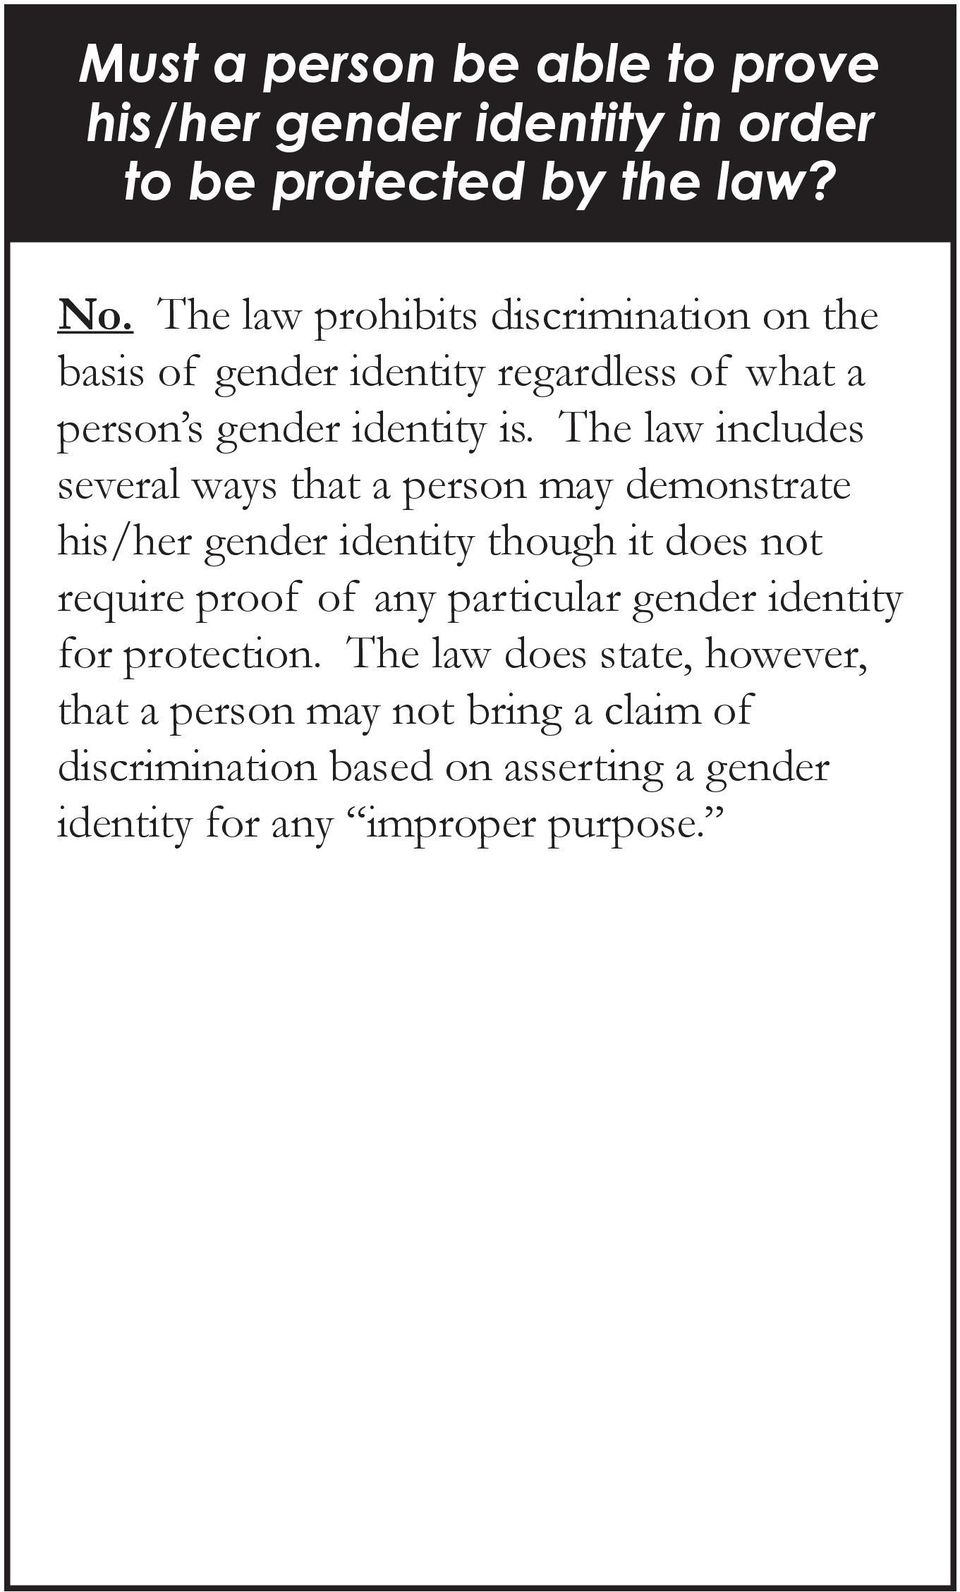 The law includes several ways that a person may demonstrate his/her gender identity though it does not require proof of any